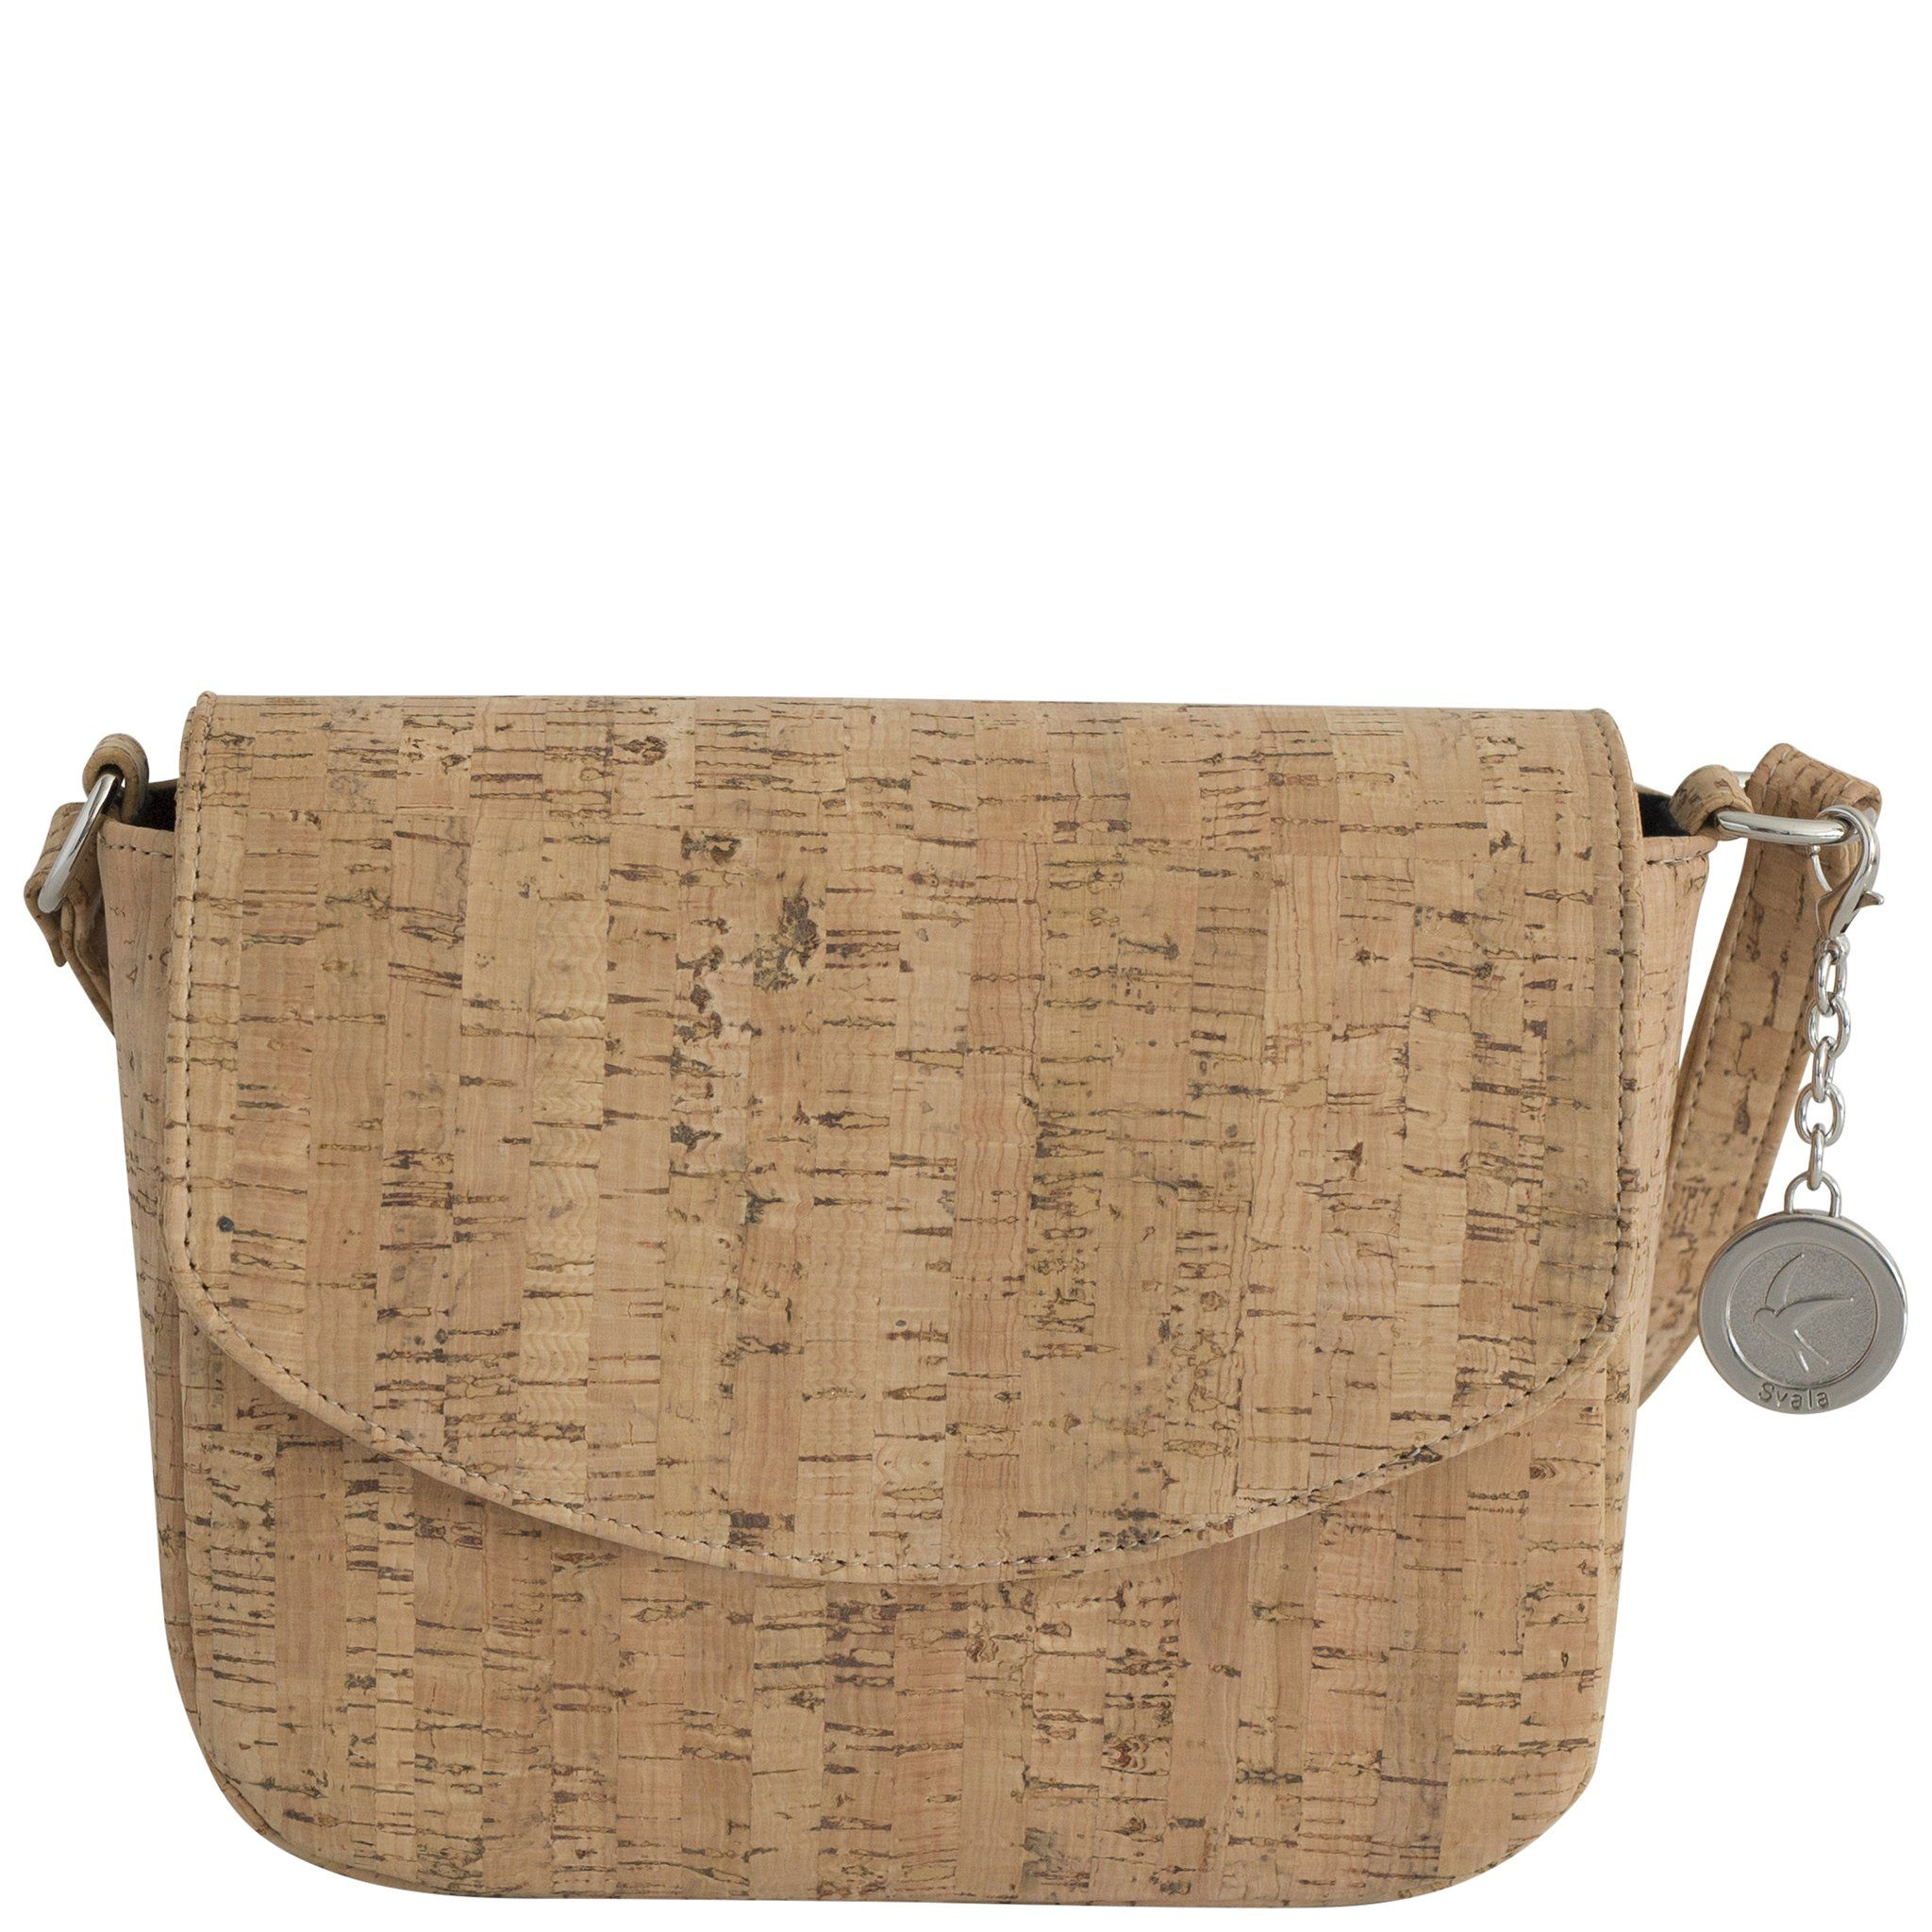 The Svala Vegan Tashi Crossbody Bag Handcrafted From Natural Cork And Lined With Organic Cotton Recycled Plastic Bottles